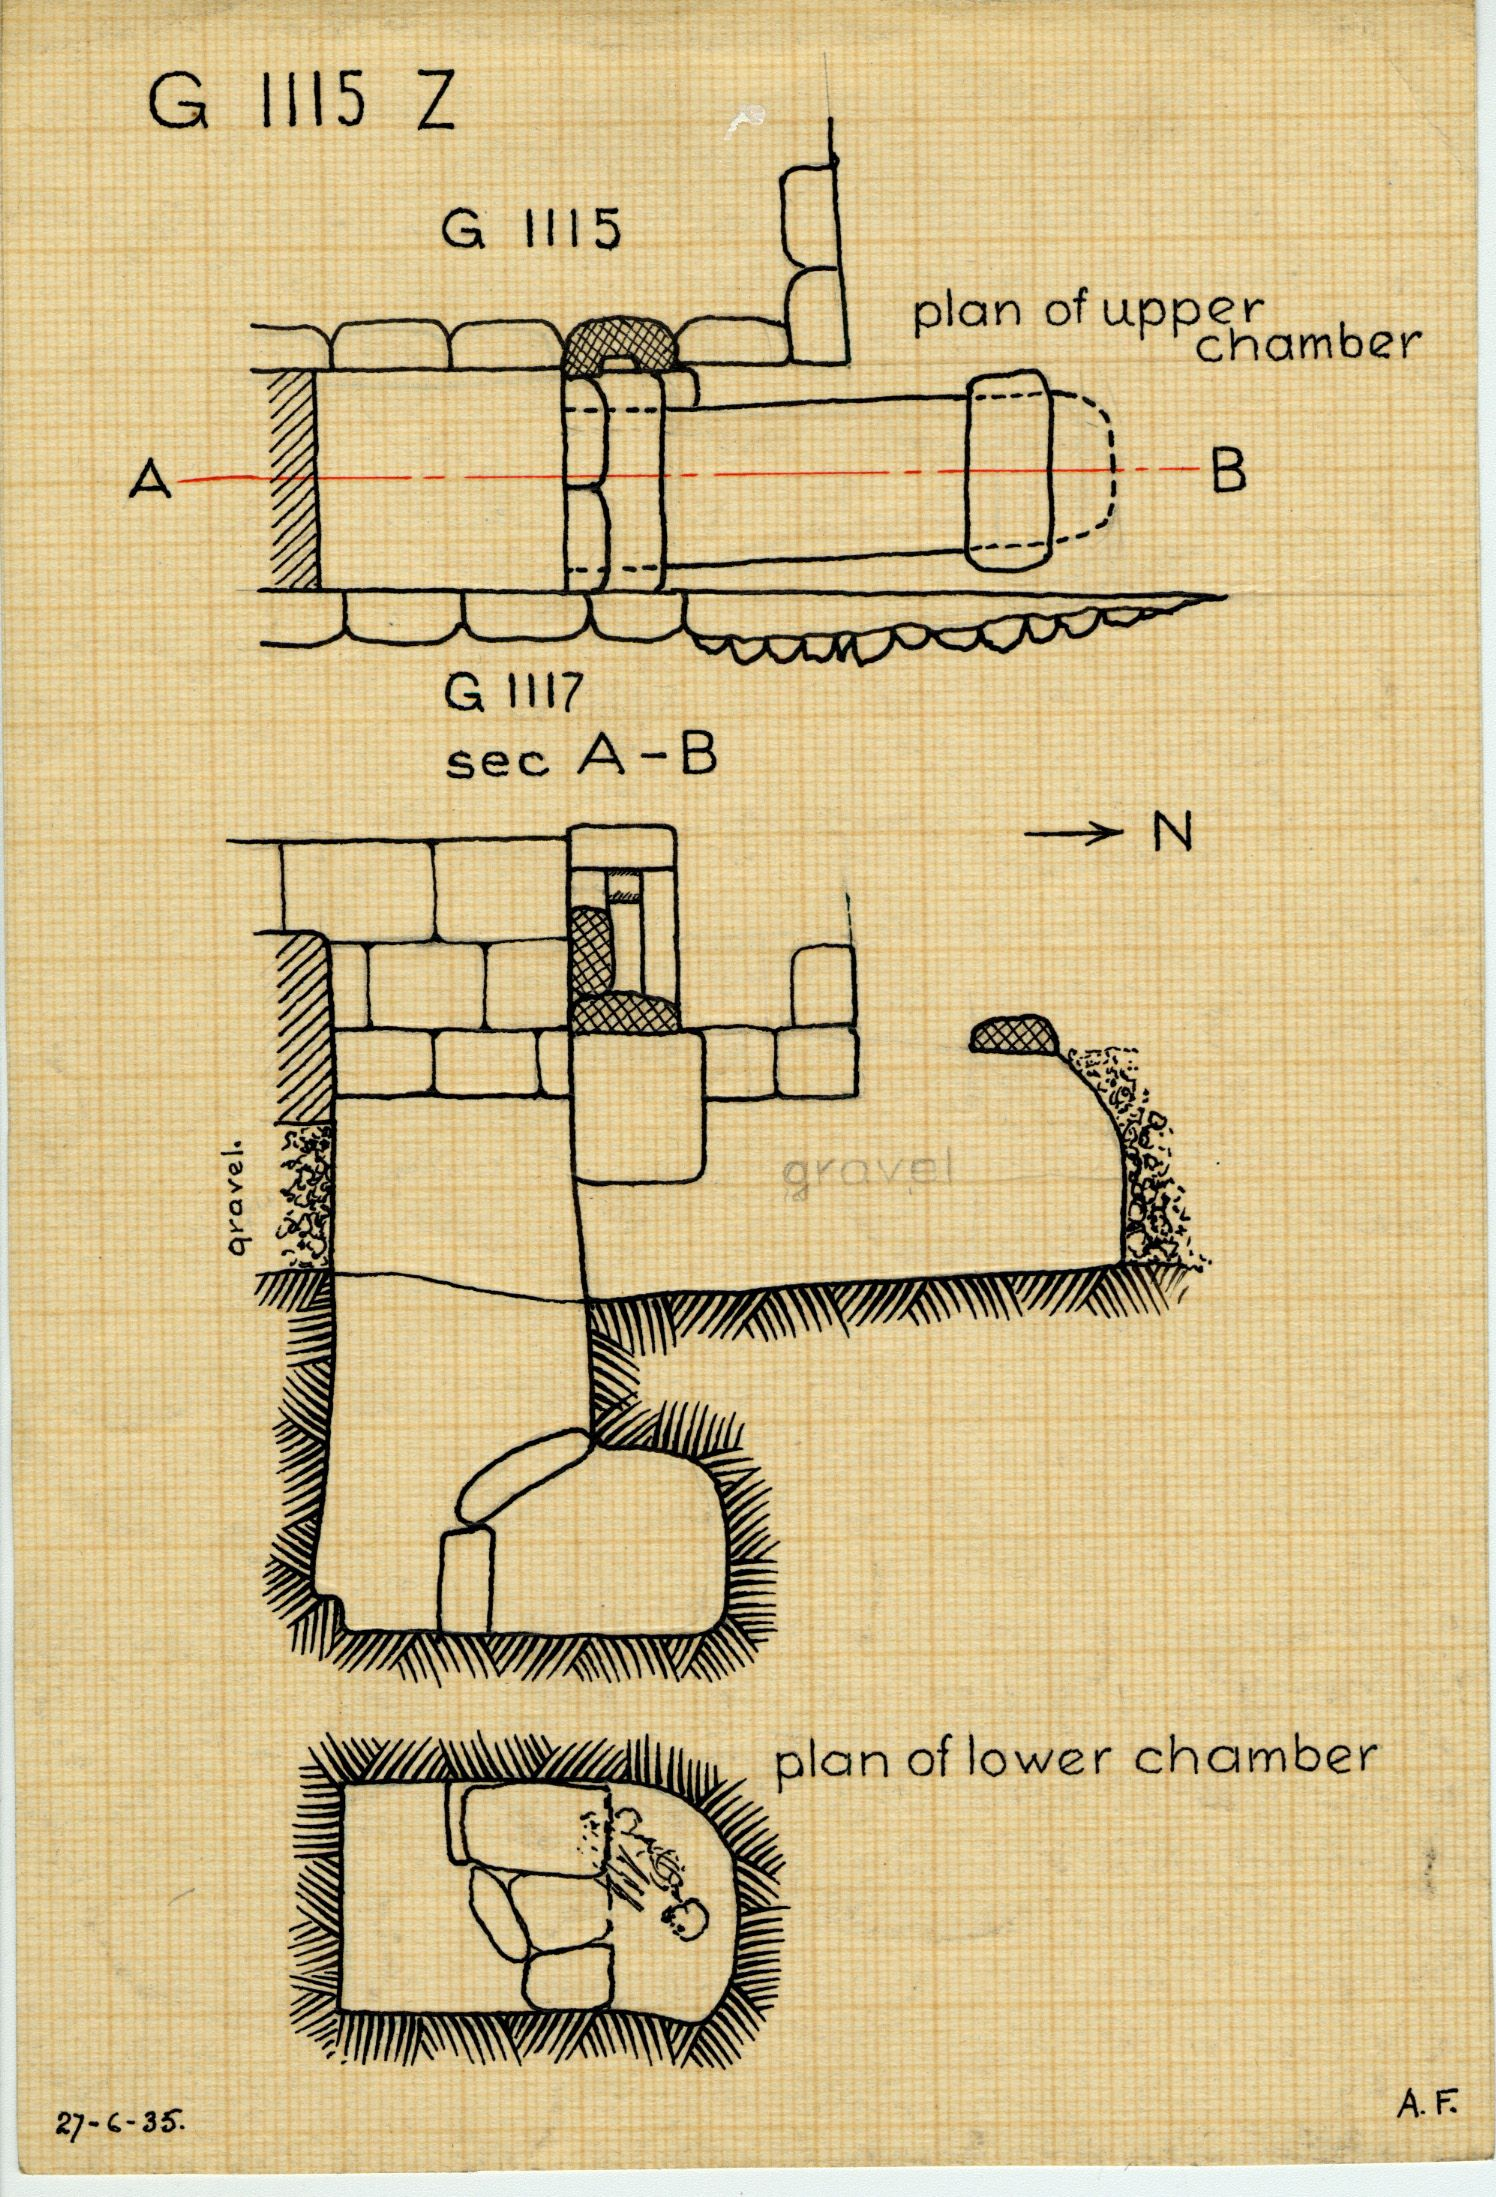 Maps and plans: G 1115, Shaft Z